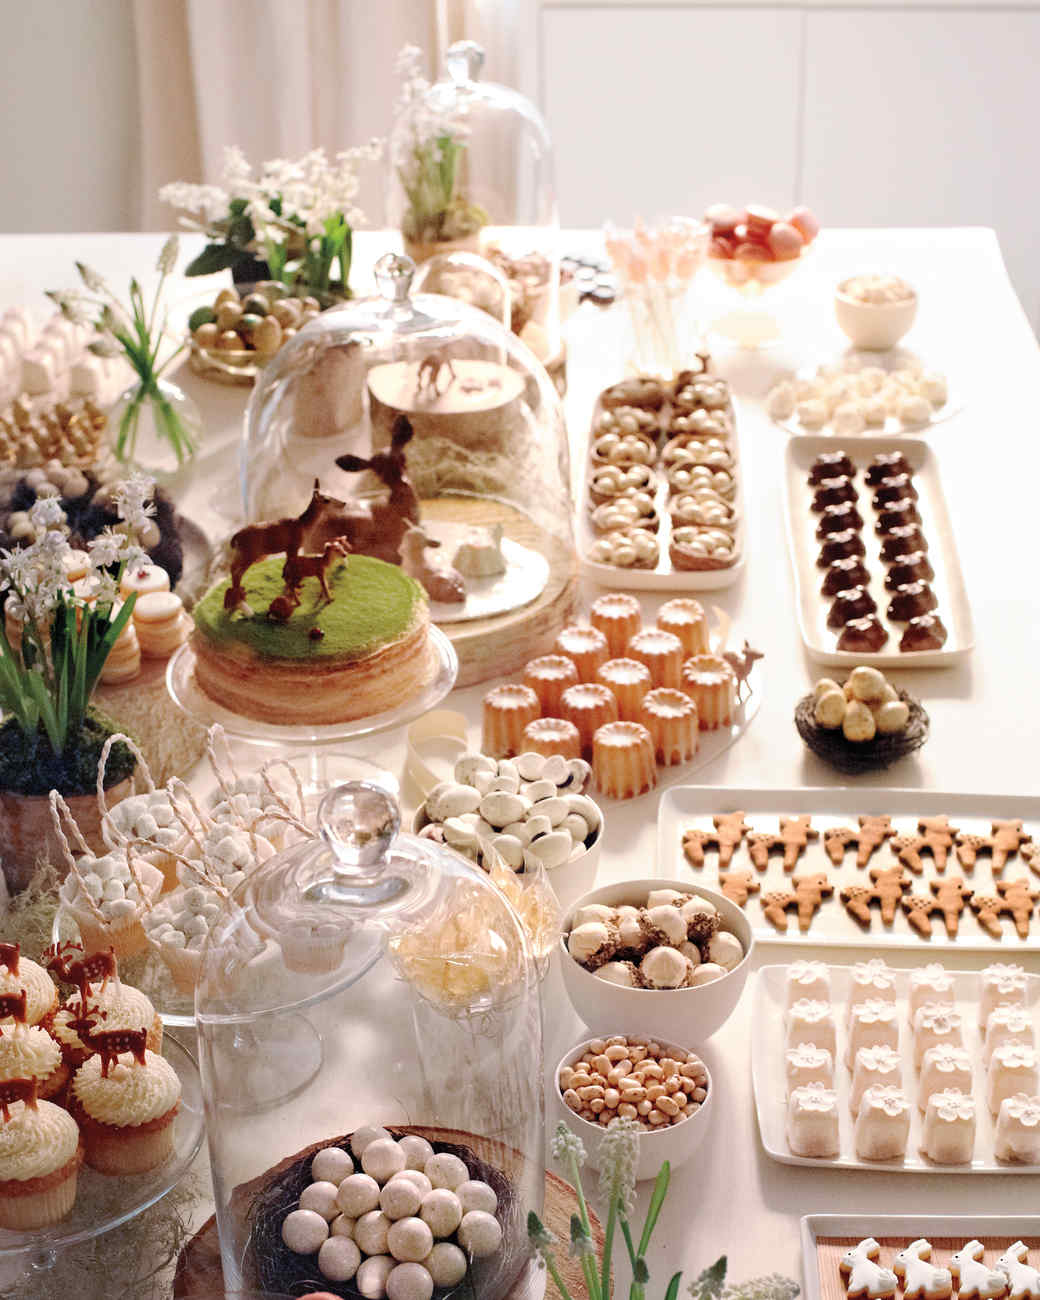 baby-shower-martha-stewart-0302134427rt-md110304.jpg